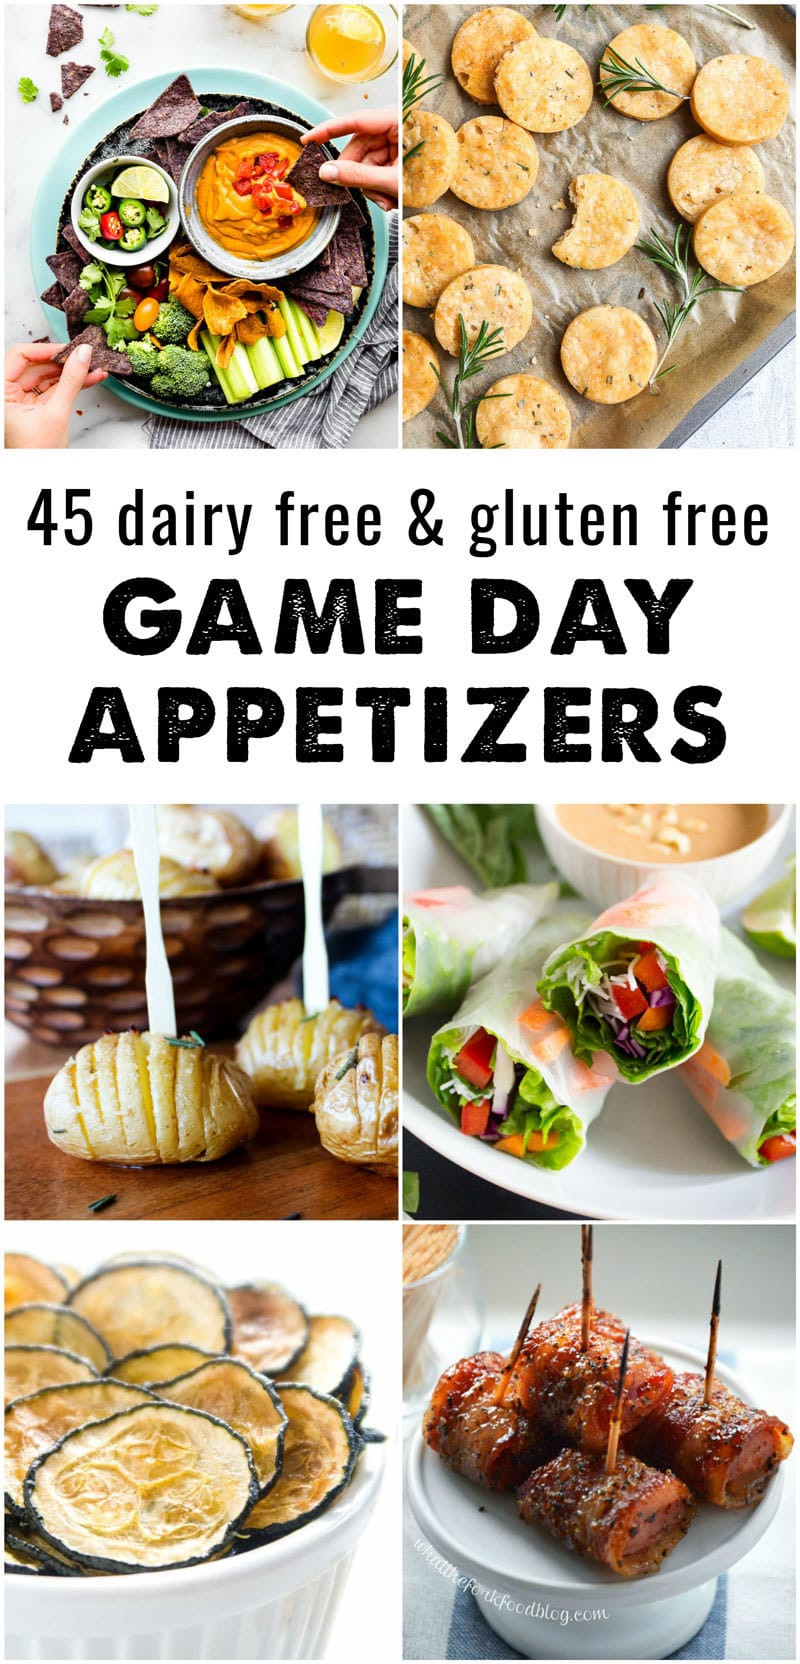 Gluten Free And Dairy Free Appetizers  45 Dairy Free and Gluten Free Appetizers • The Fit Cookie